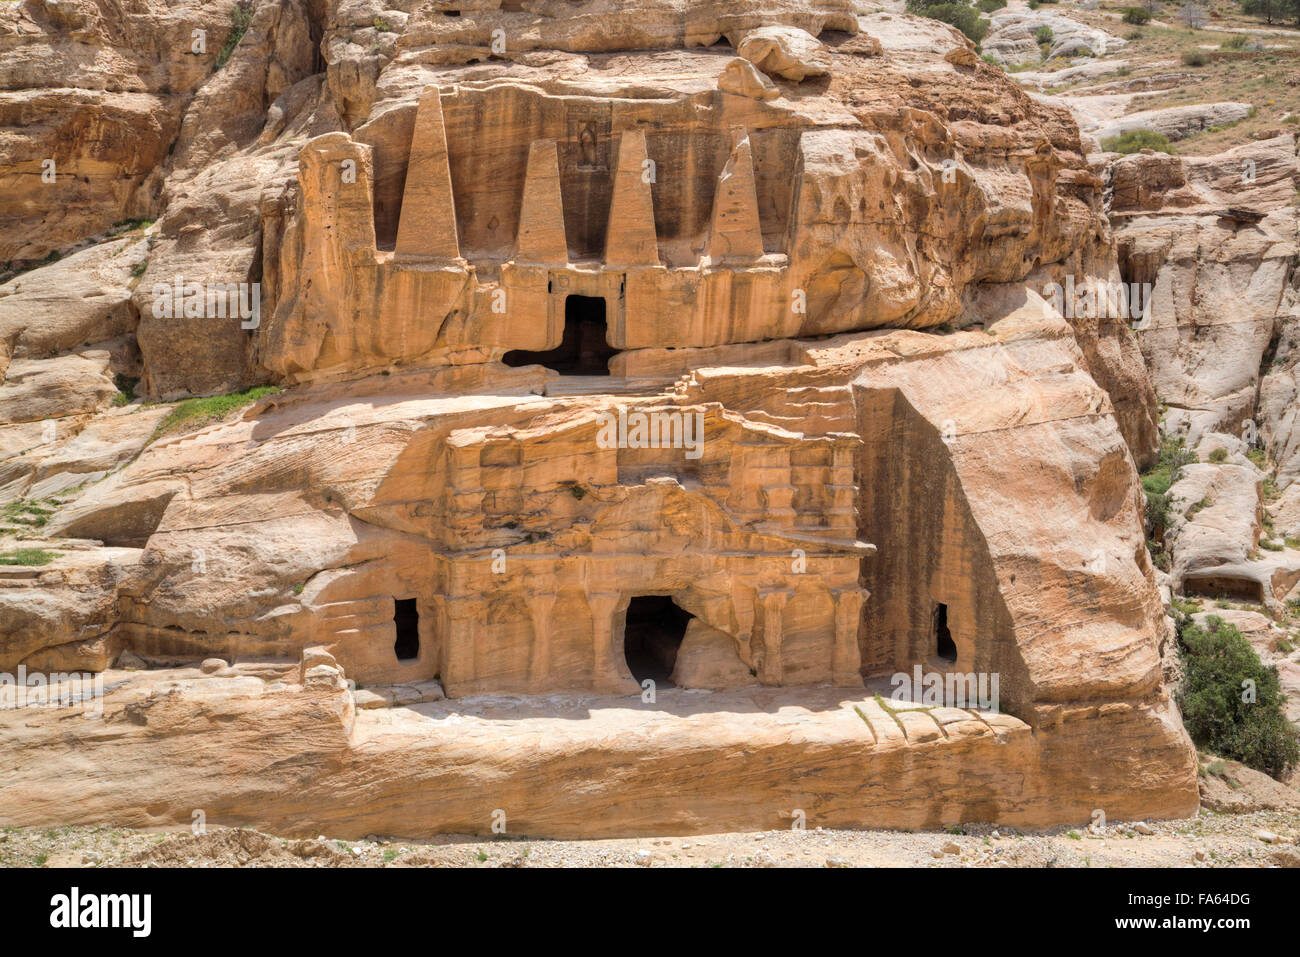 Obelisk Tomb (upper structure), Bab as-Sig Triclinium (lower Structure), Petra, Jordan - Stock Image